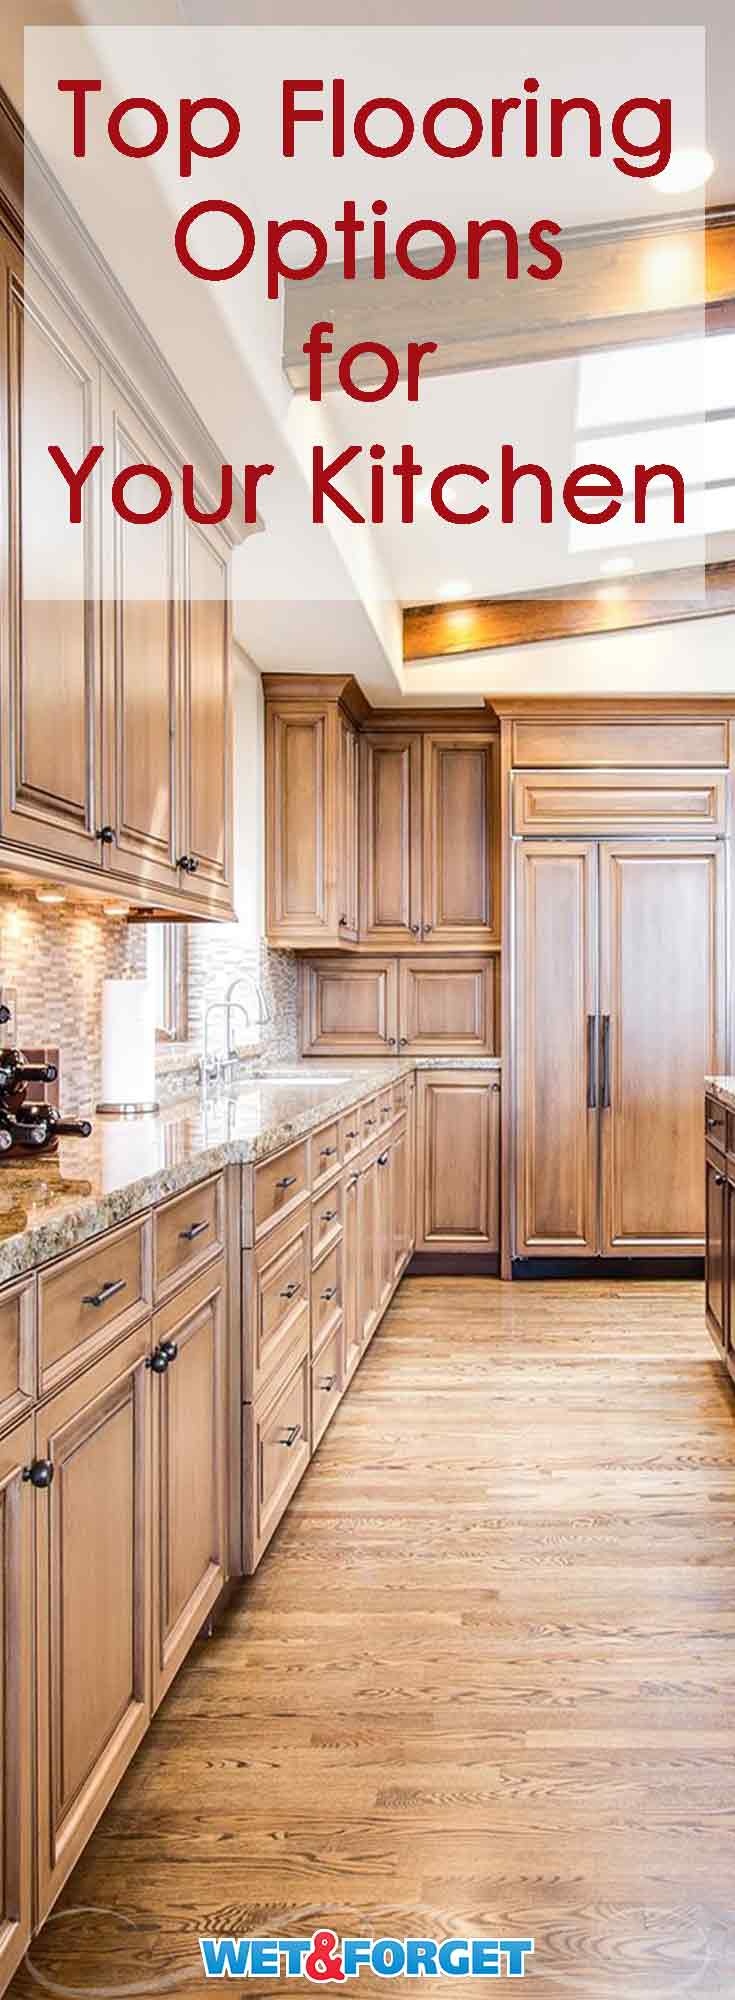 It can be difficult to decide what type of flooring you want to use in your kitchen. Discover which new flooring option suits your kitchen best with this easy to follow guide.